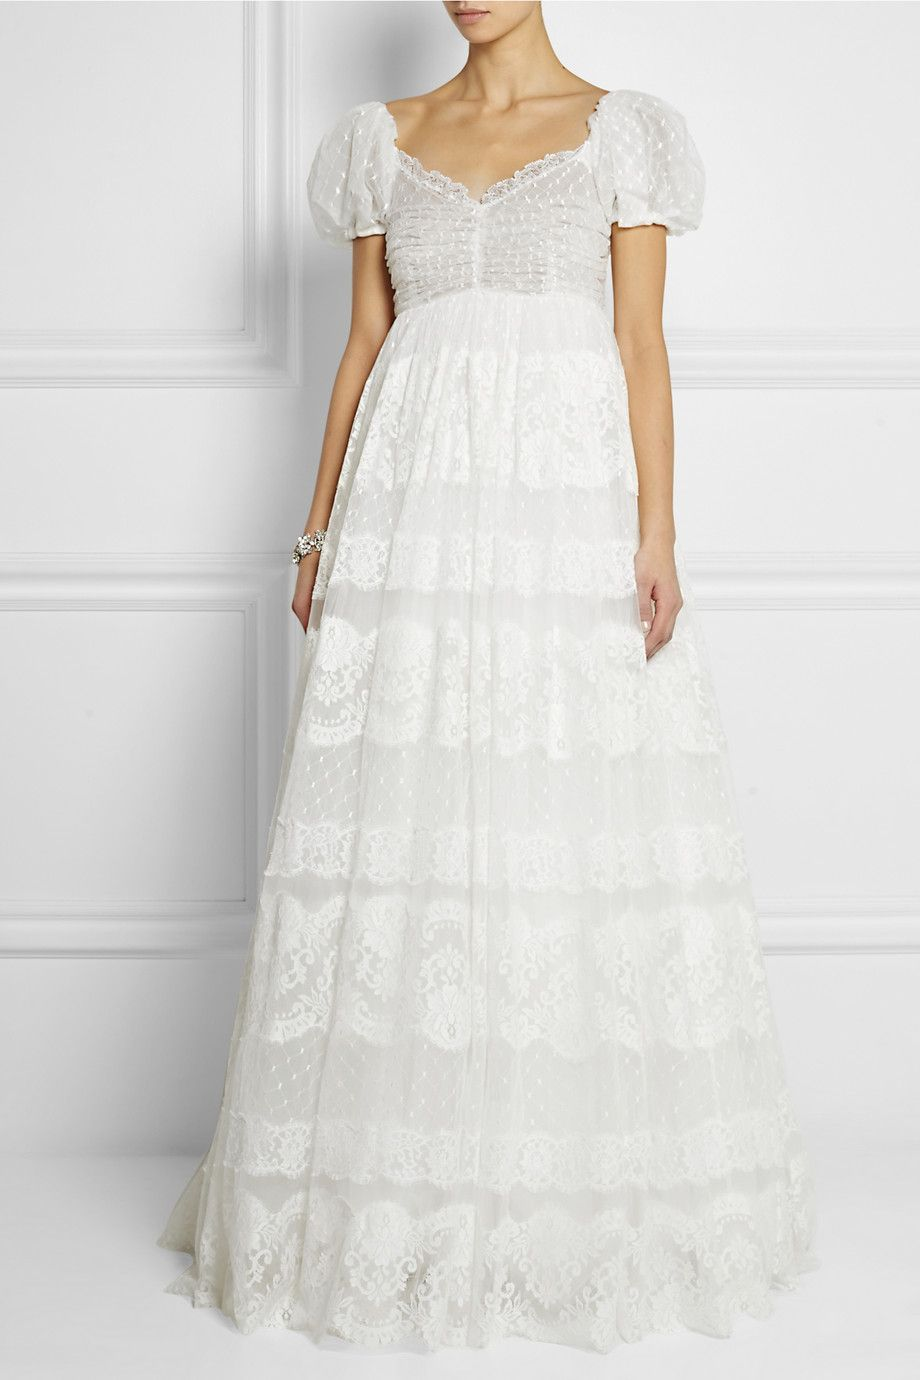 Would You Get Married In This Dolce Gabbana Lace